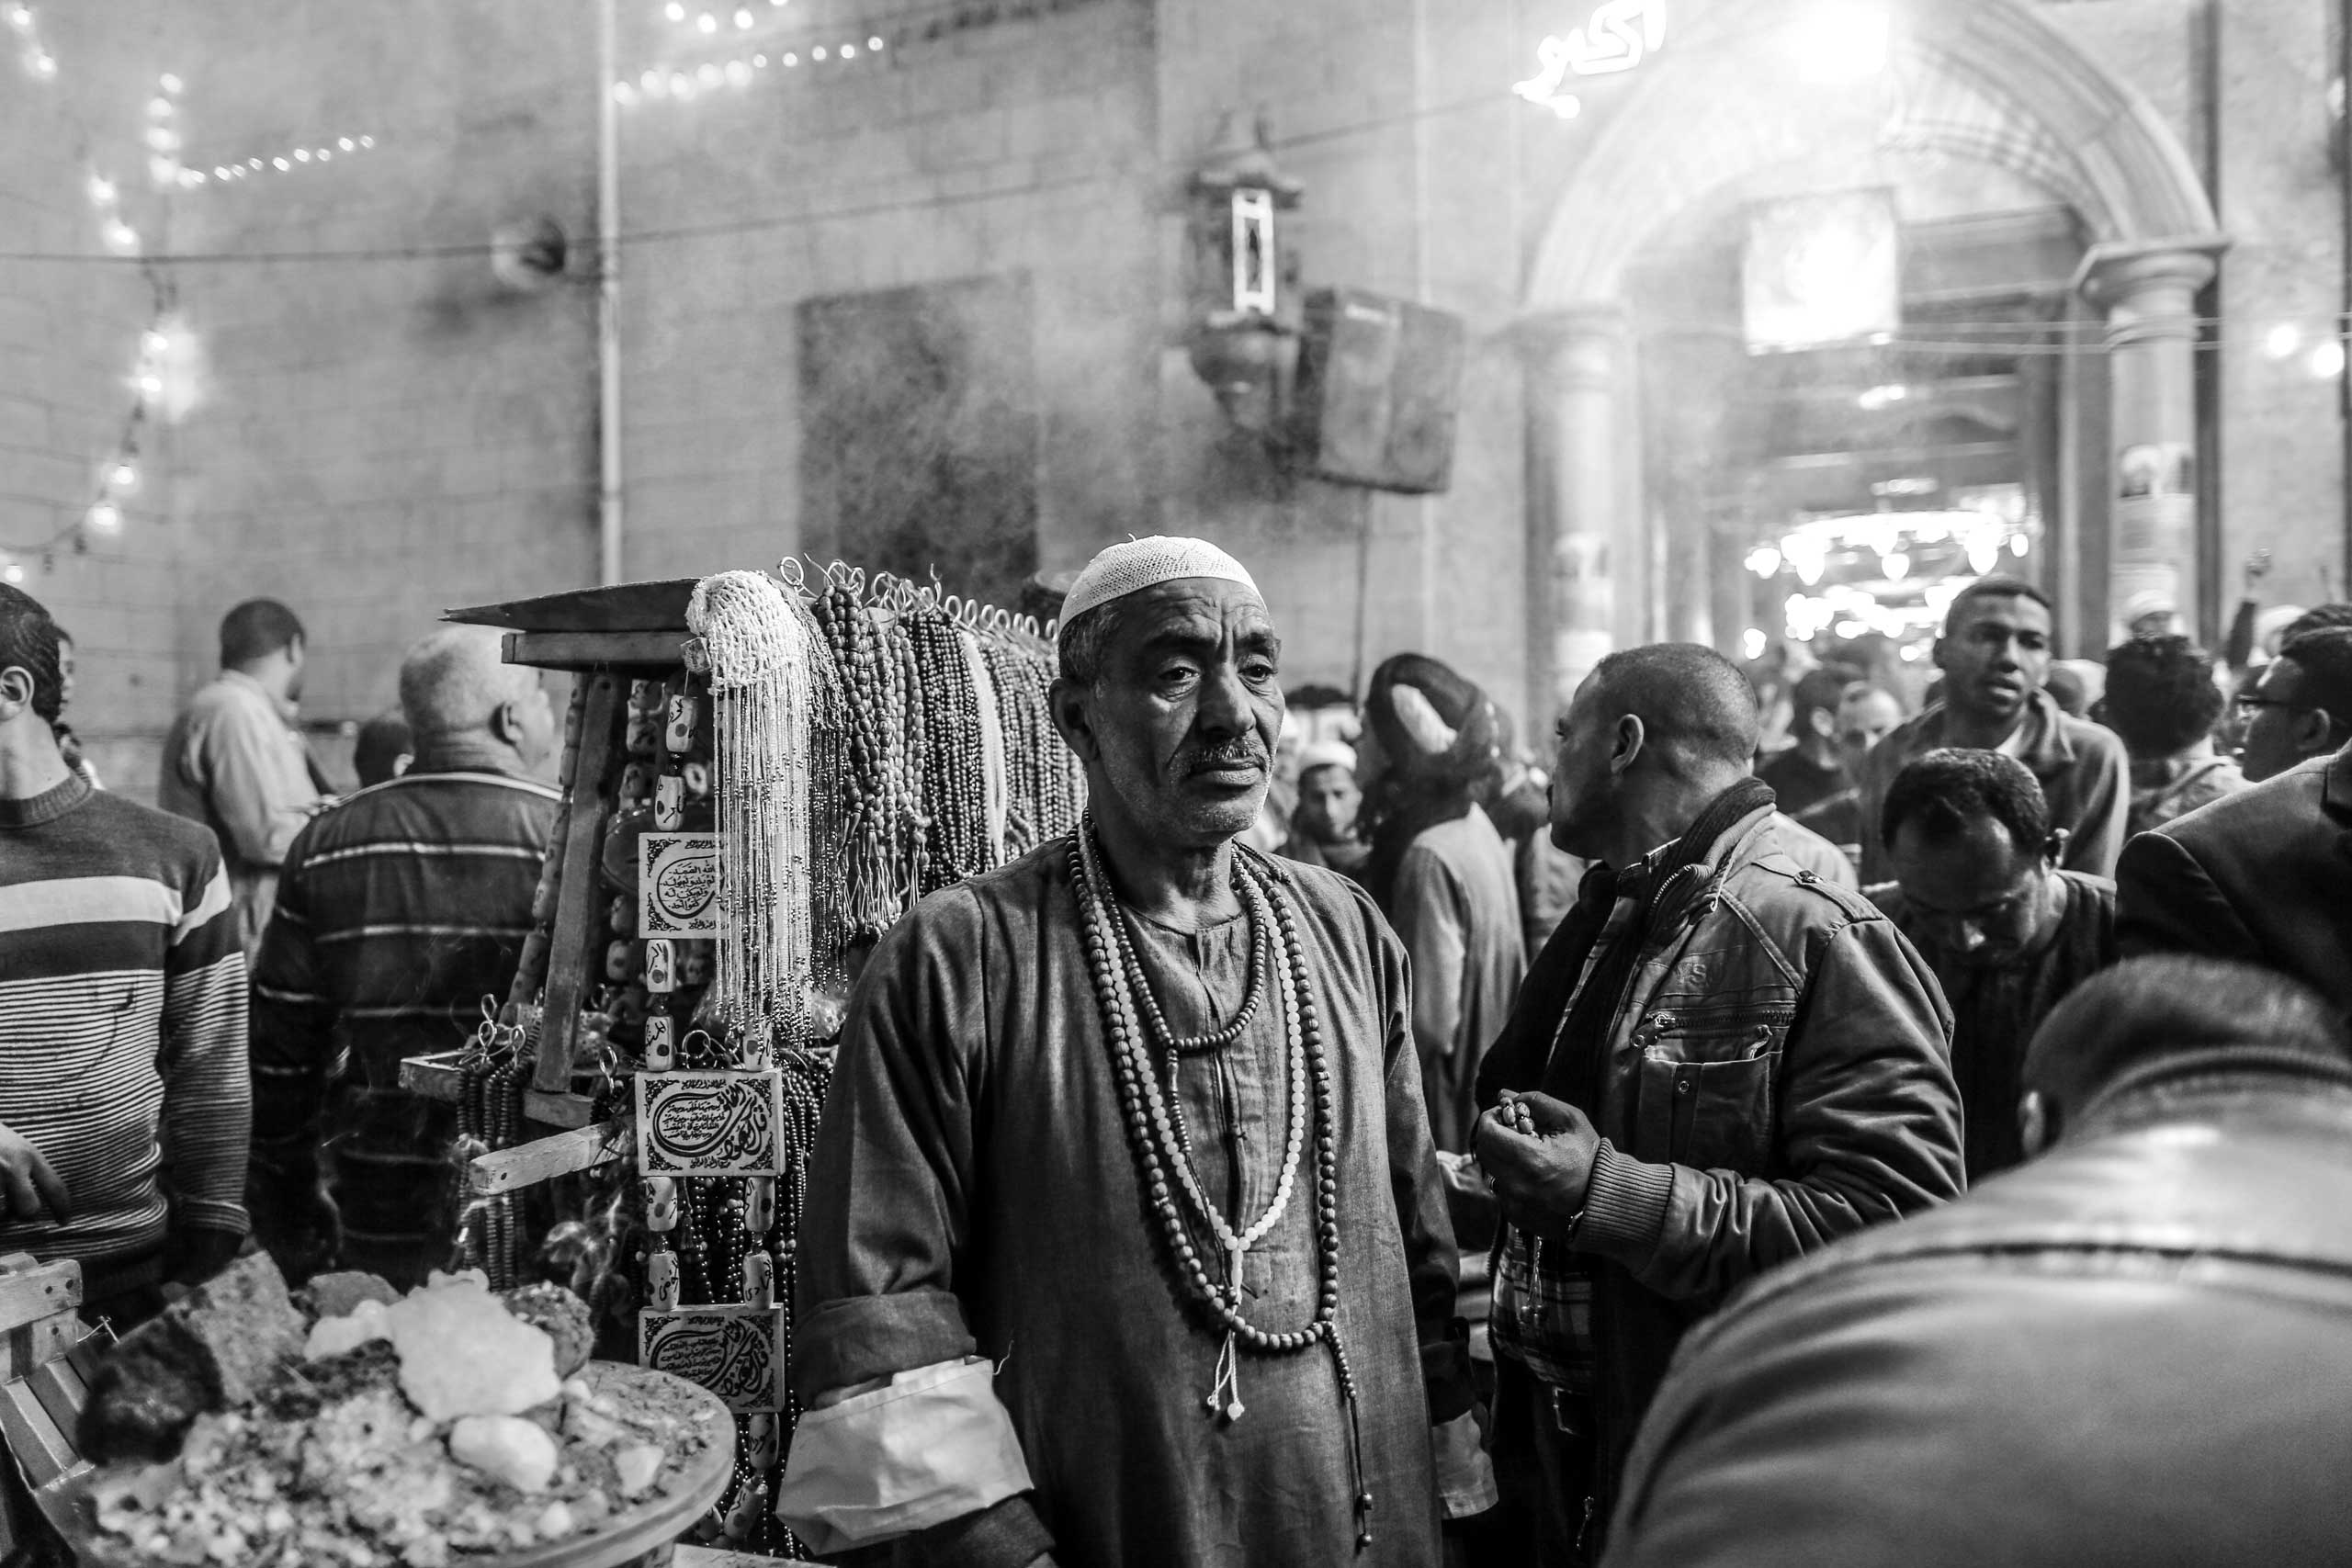 A merchant stands the mosque of Al-Hussein, the grandson of the Prophet Muhammad. Downtown Cairo, Egypt. Feb. 25, 2014.